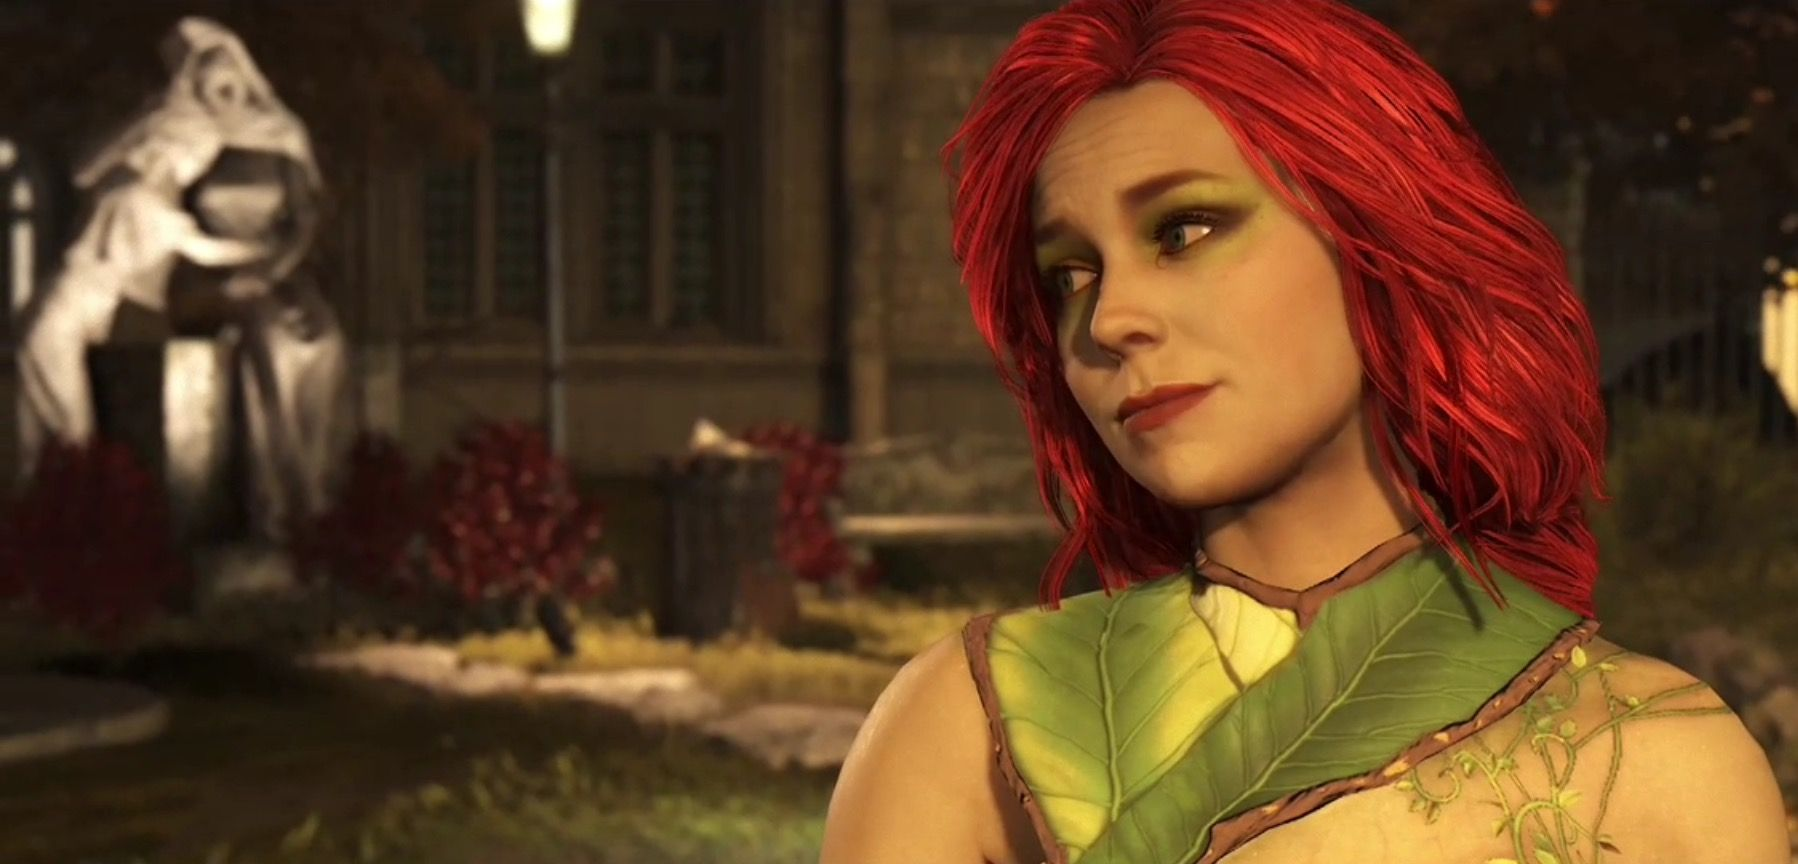 Injustice 2 Poison Ivy Poison Ivy Long Hair Styles Beauty